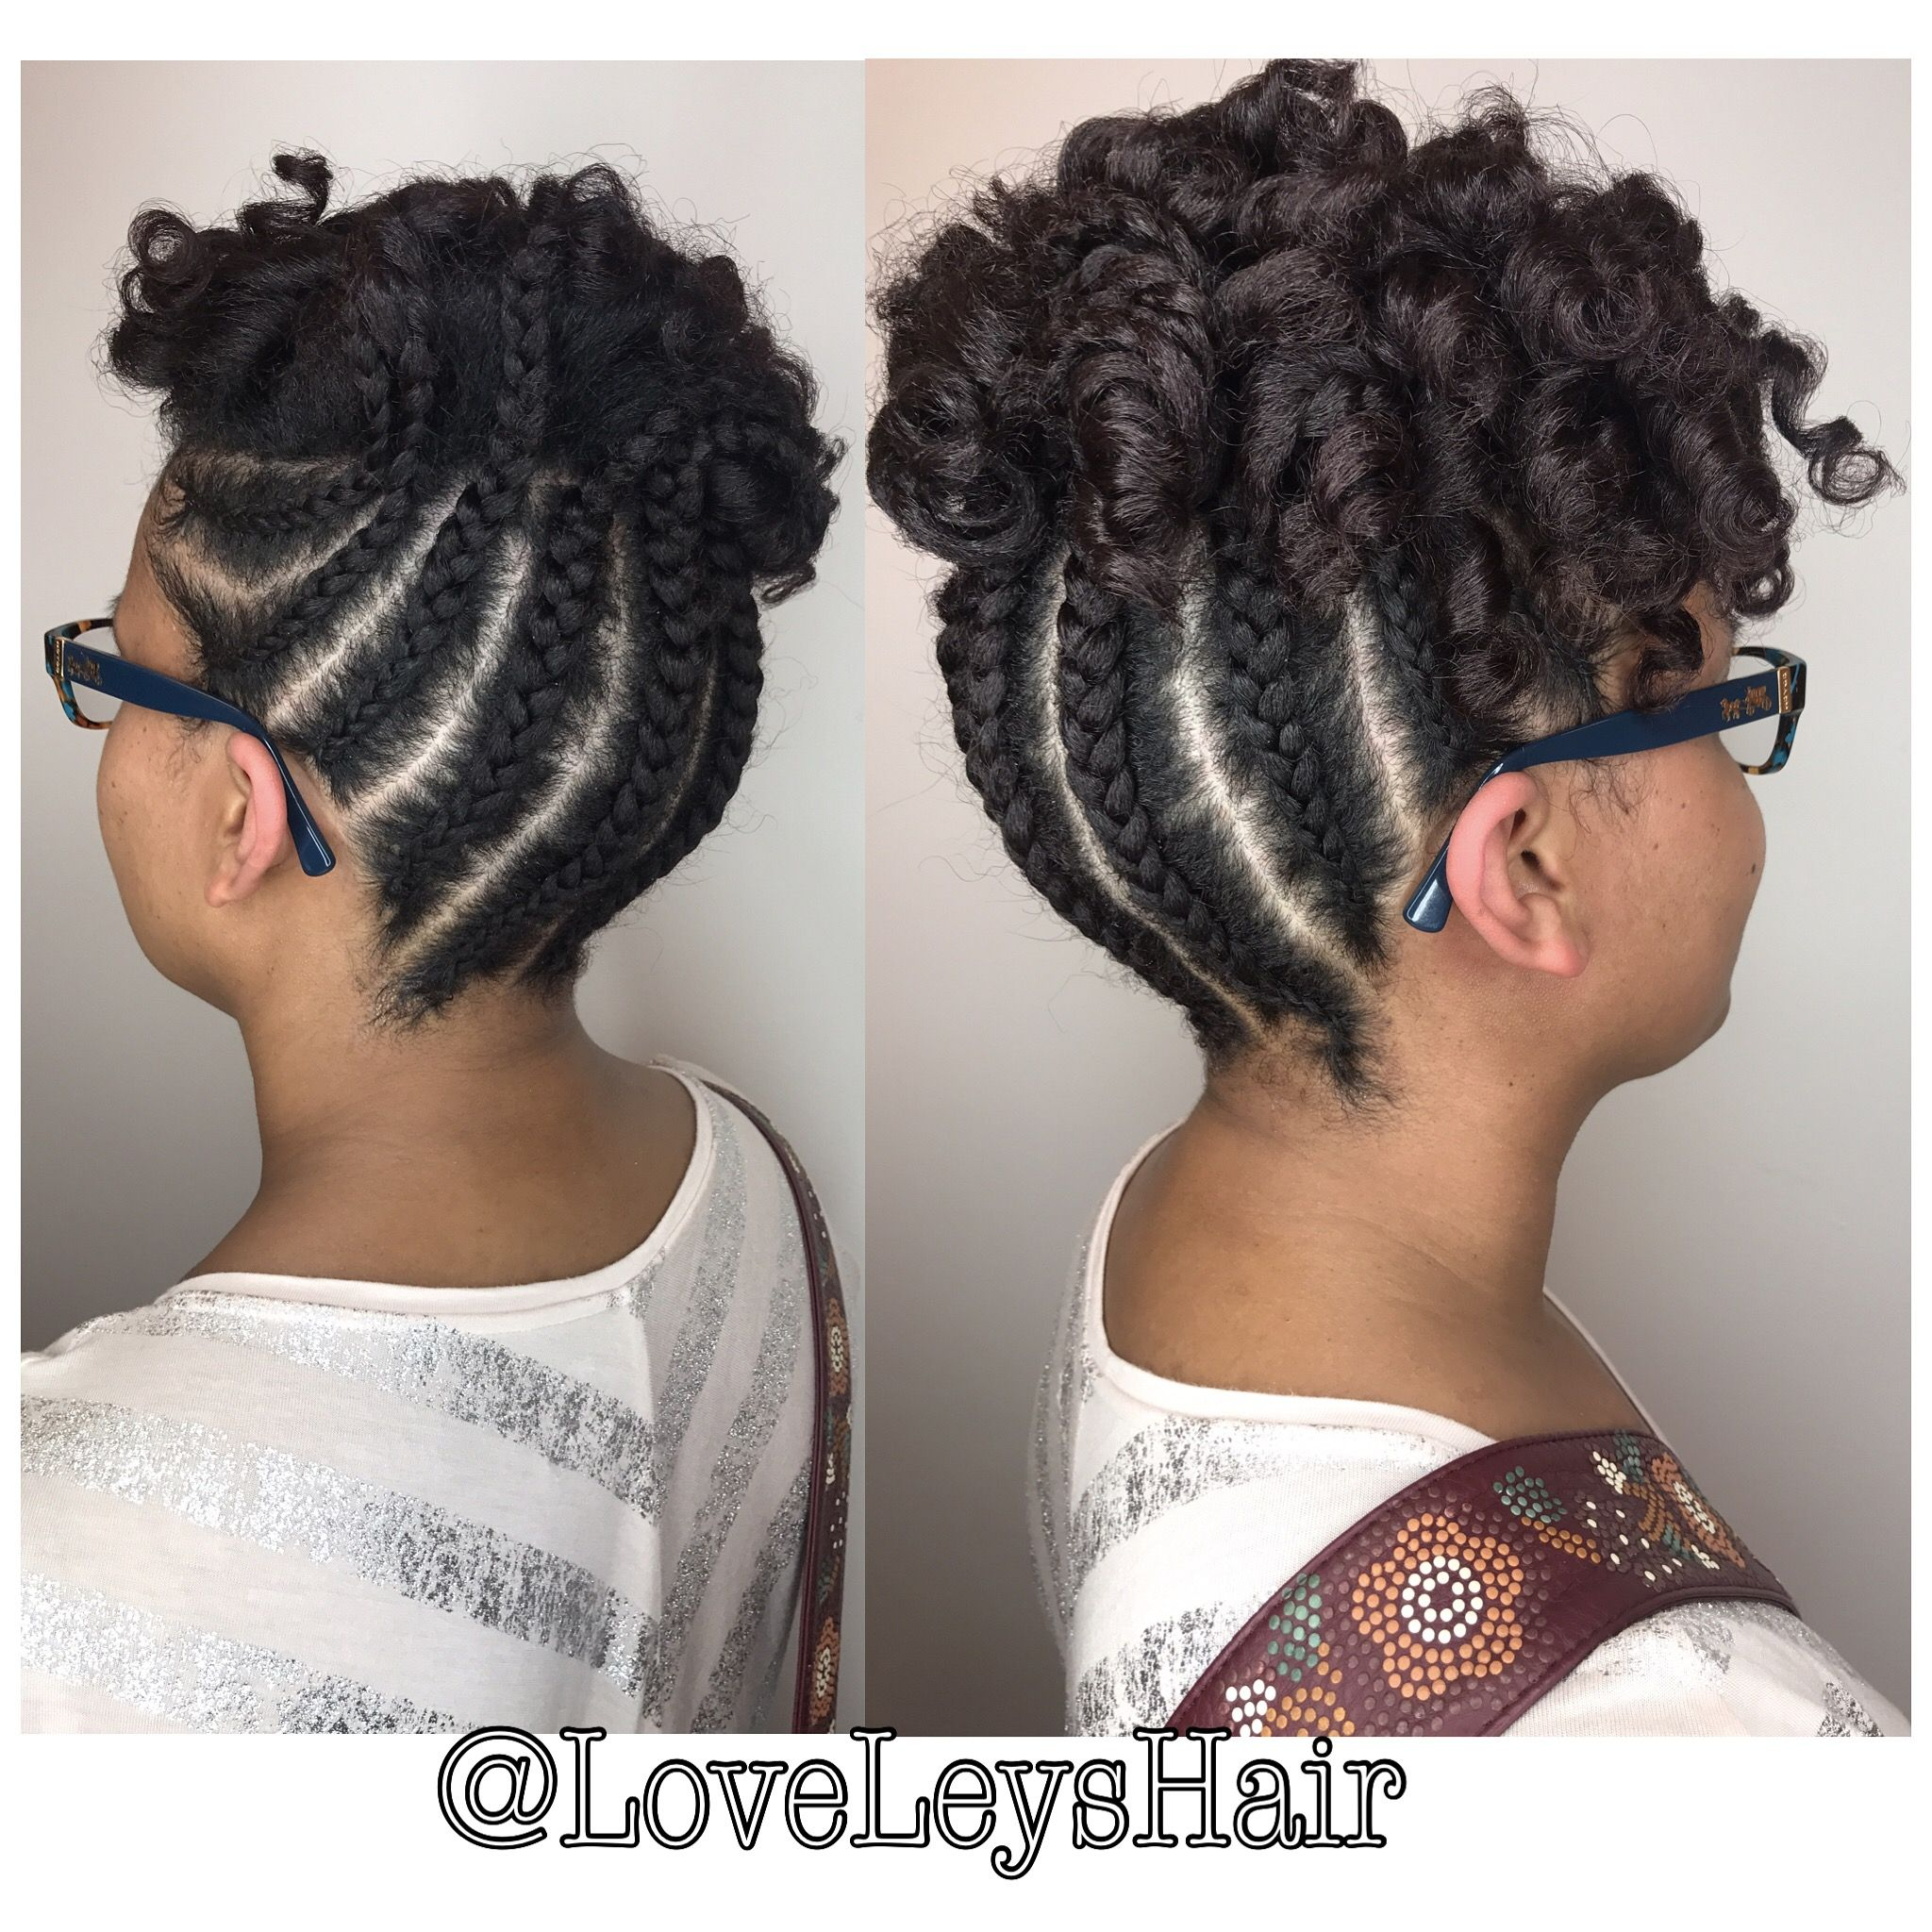 4c Hairstyle Braids Cornrows With Flexi Rod Set Natural Hair Updo Short Hair Styles Easy Natural Hair Styles Natural Hair Updo